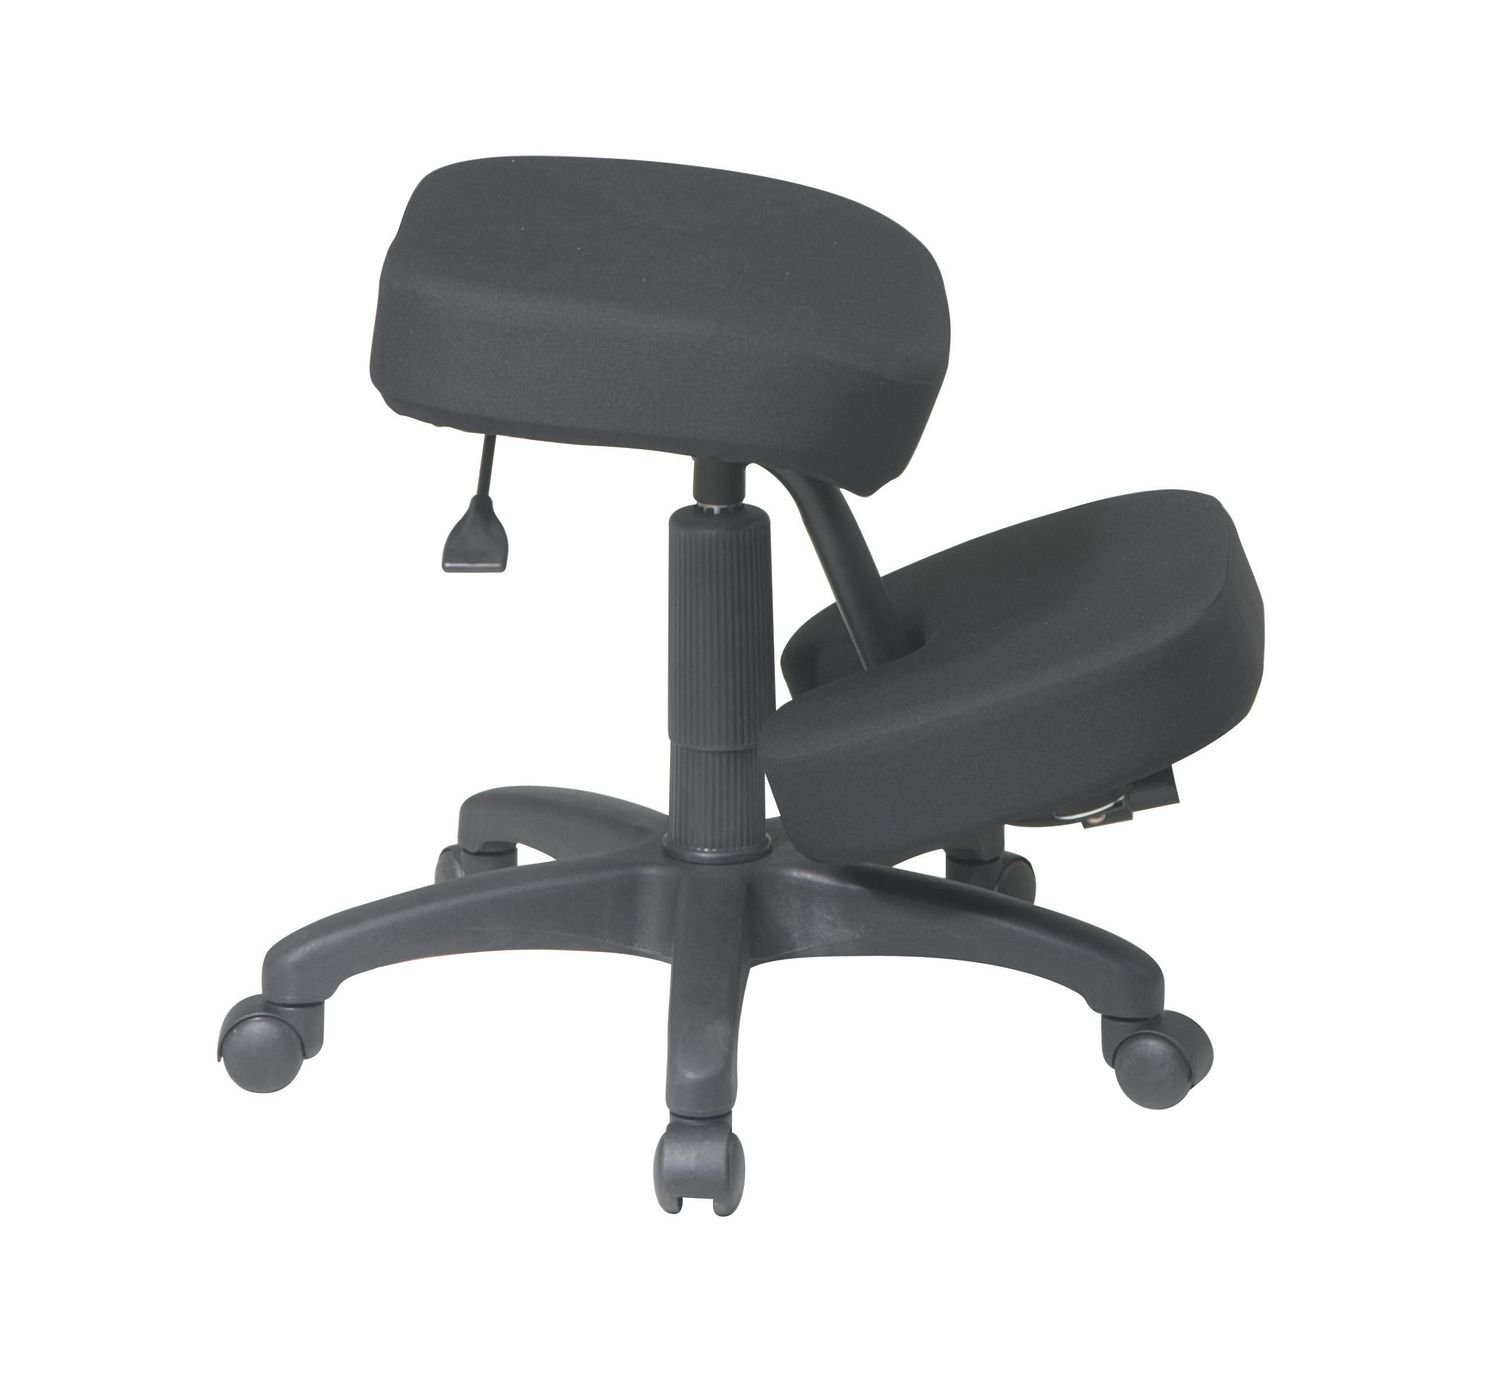 office star chairs. Office Star Products Work Smart Ergonomically Designed Knee Chair With 5 Base And Memory Foam | Walmart Canada Chairs D